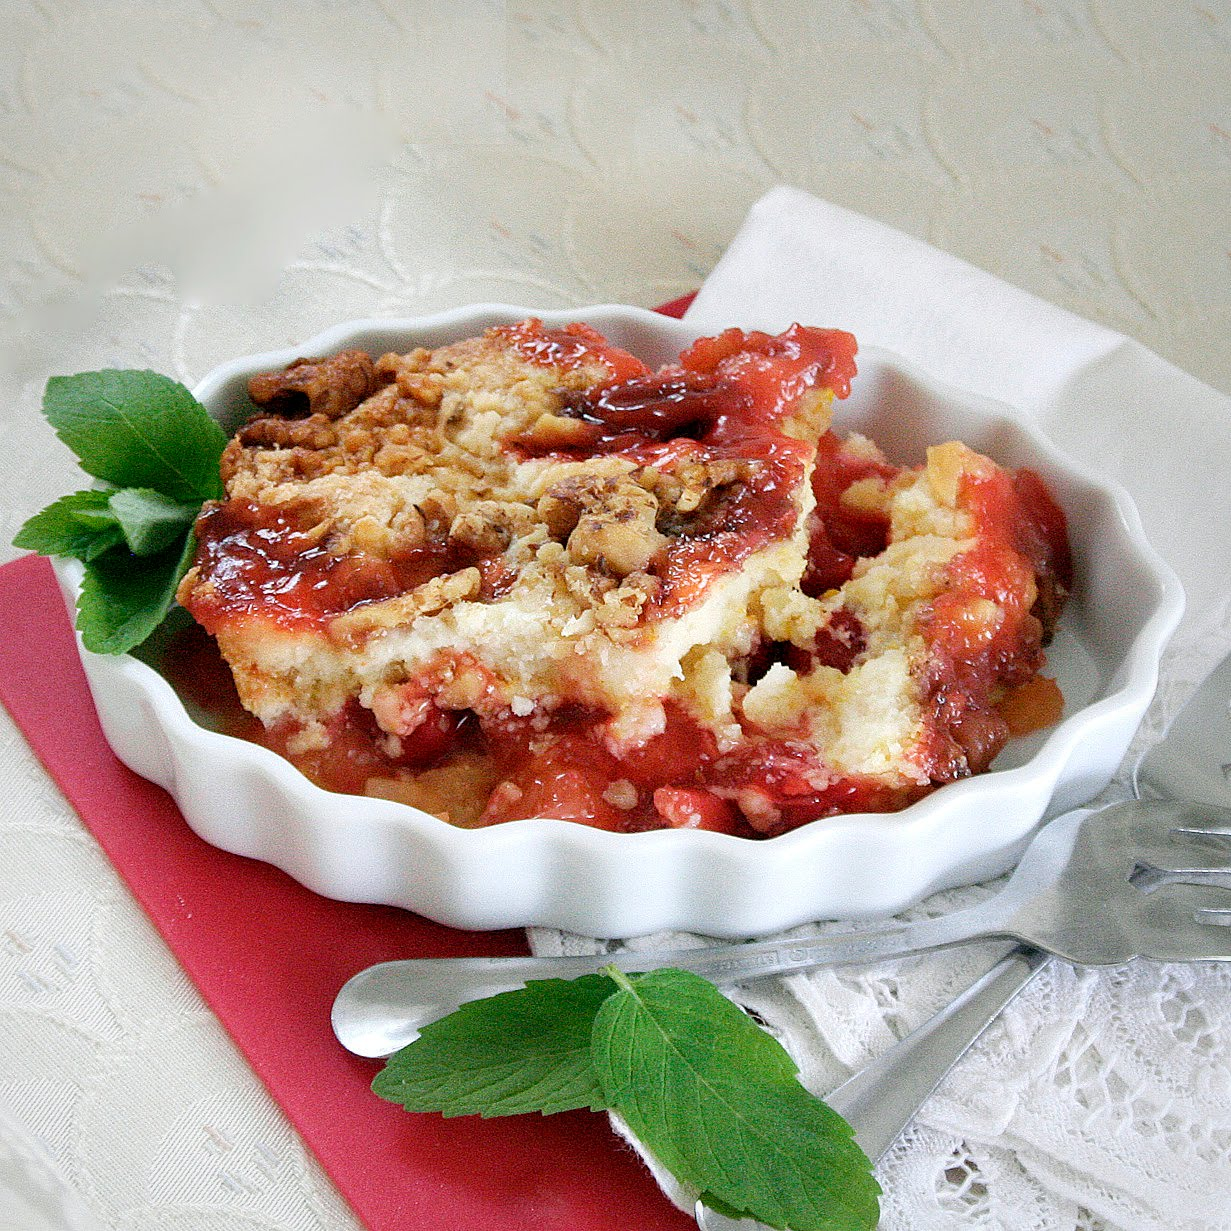 ... Grateful Prayer and a Thankful Heart: Cherry Pineapple Dump Cake